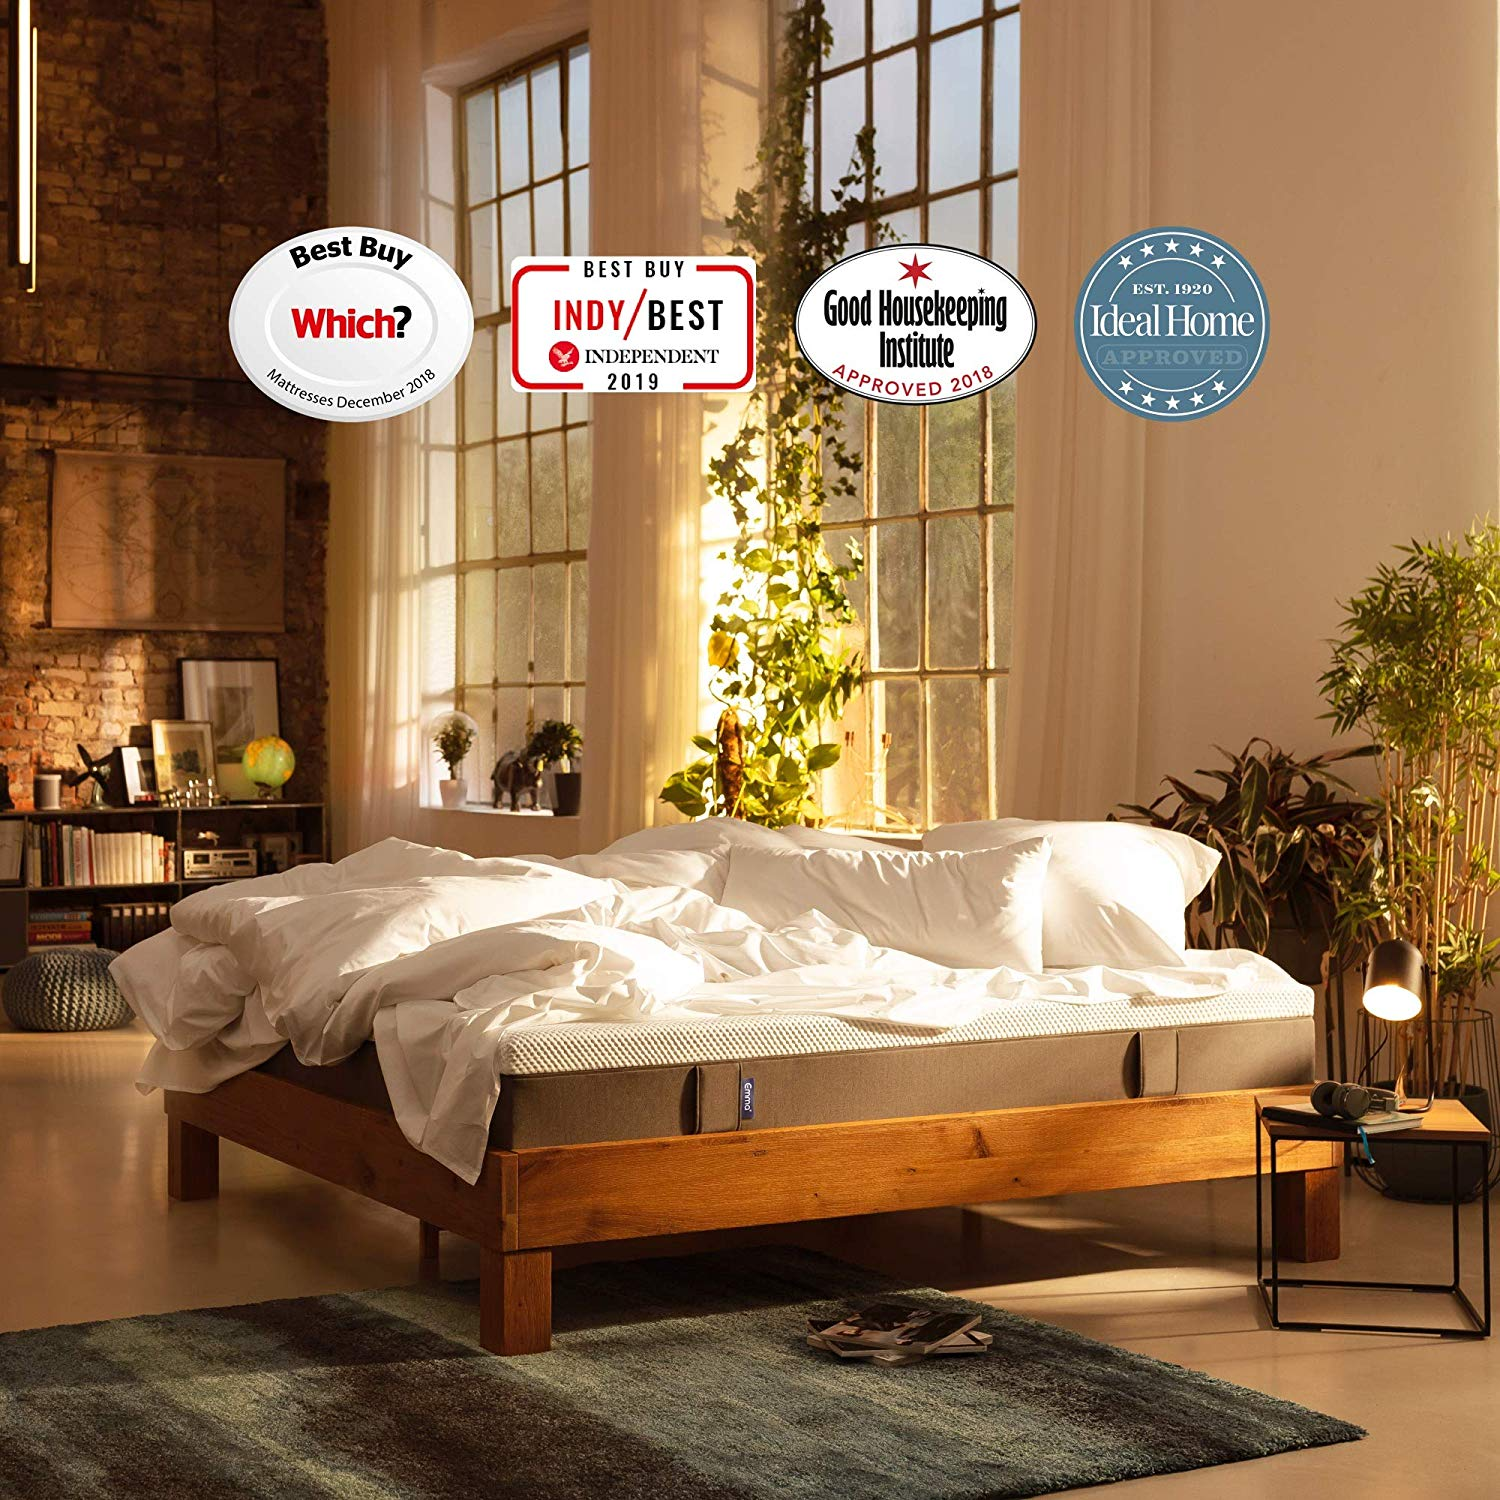 Emma Original Single Mattress 90×190 25 cm high Memory Foam Mattress